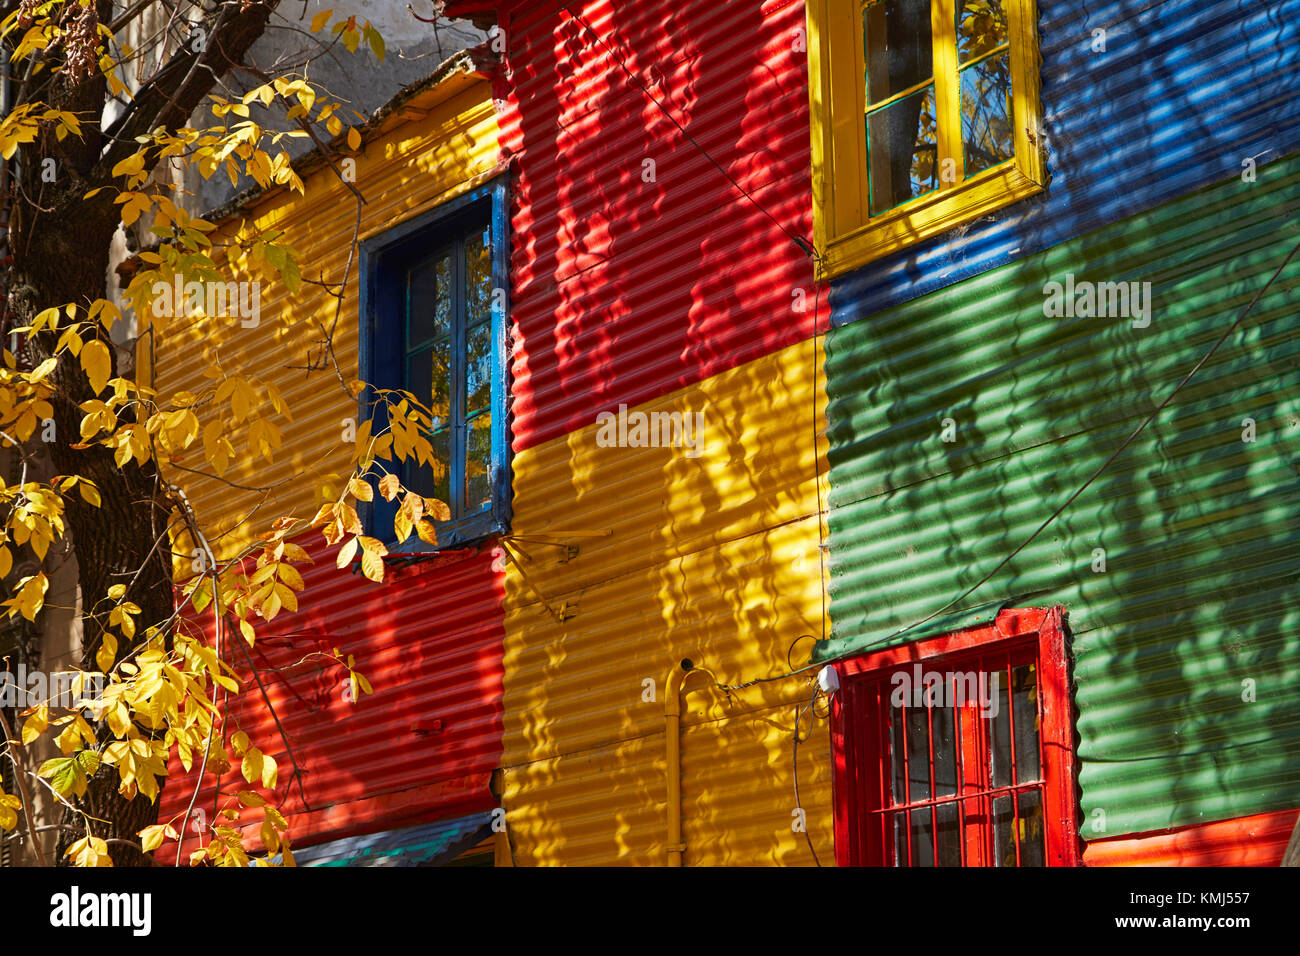 Colourful corrugated iron buildings, La Boca, Buenos Aires, Argentina, South America - Stock Image